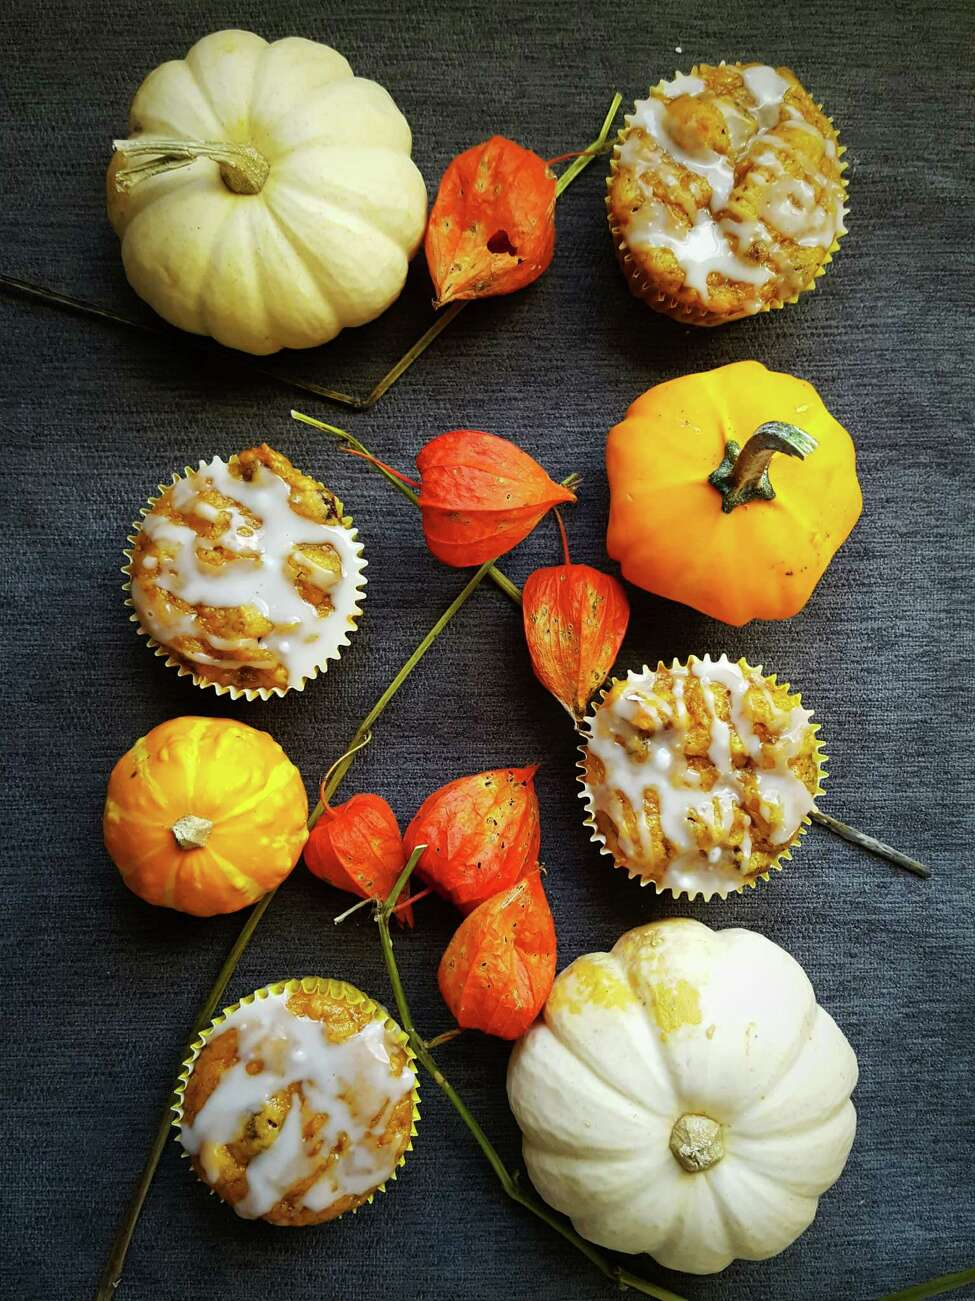 Butternut Squash Sweet Morning Muffins have a maple glaze that will make breakfast a real treat. (Deanna Fox)